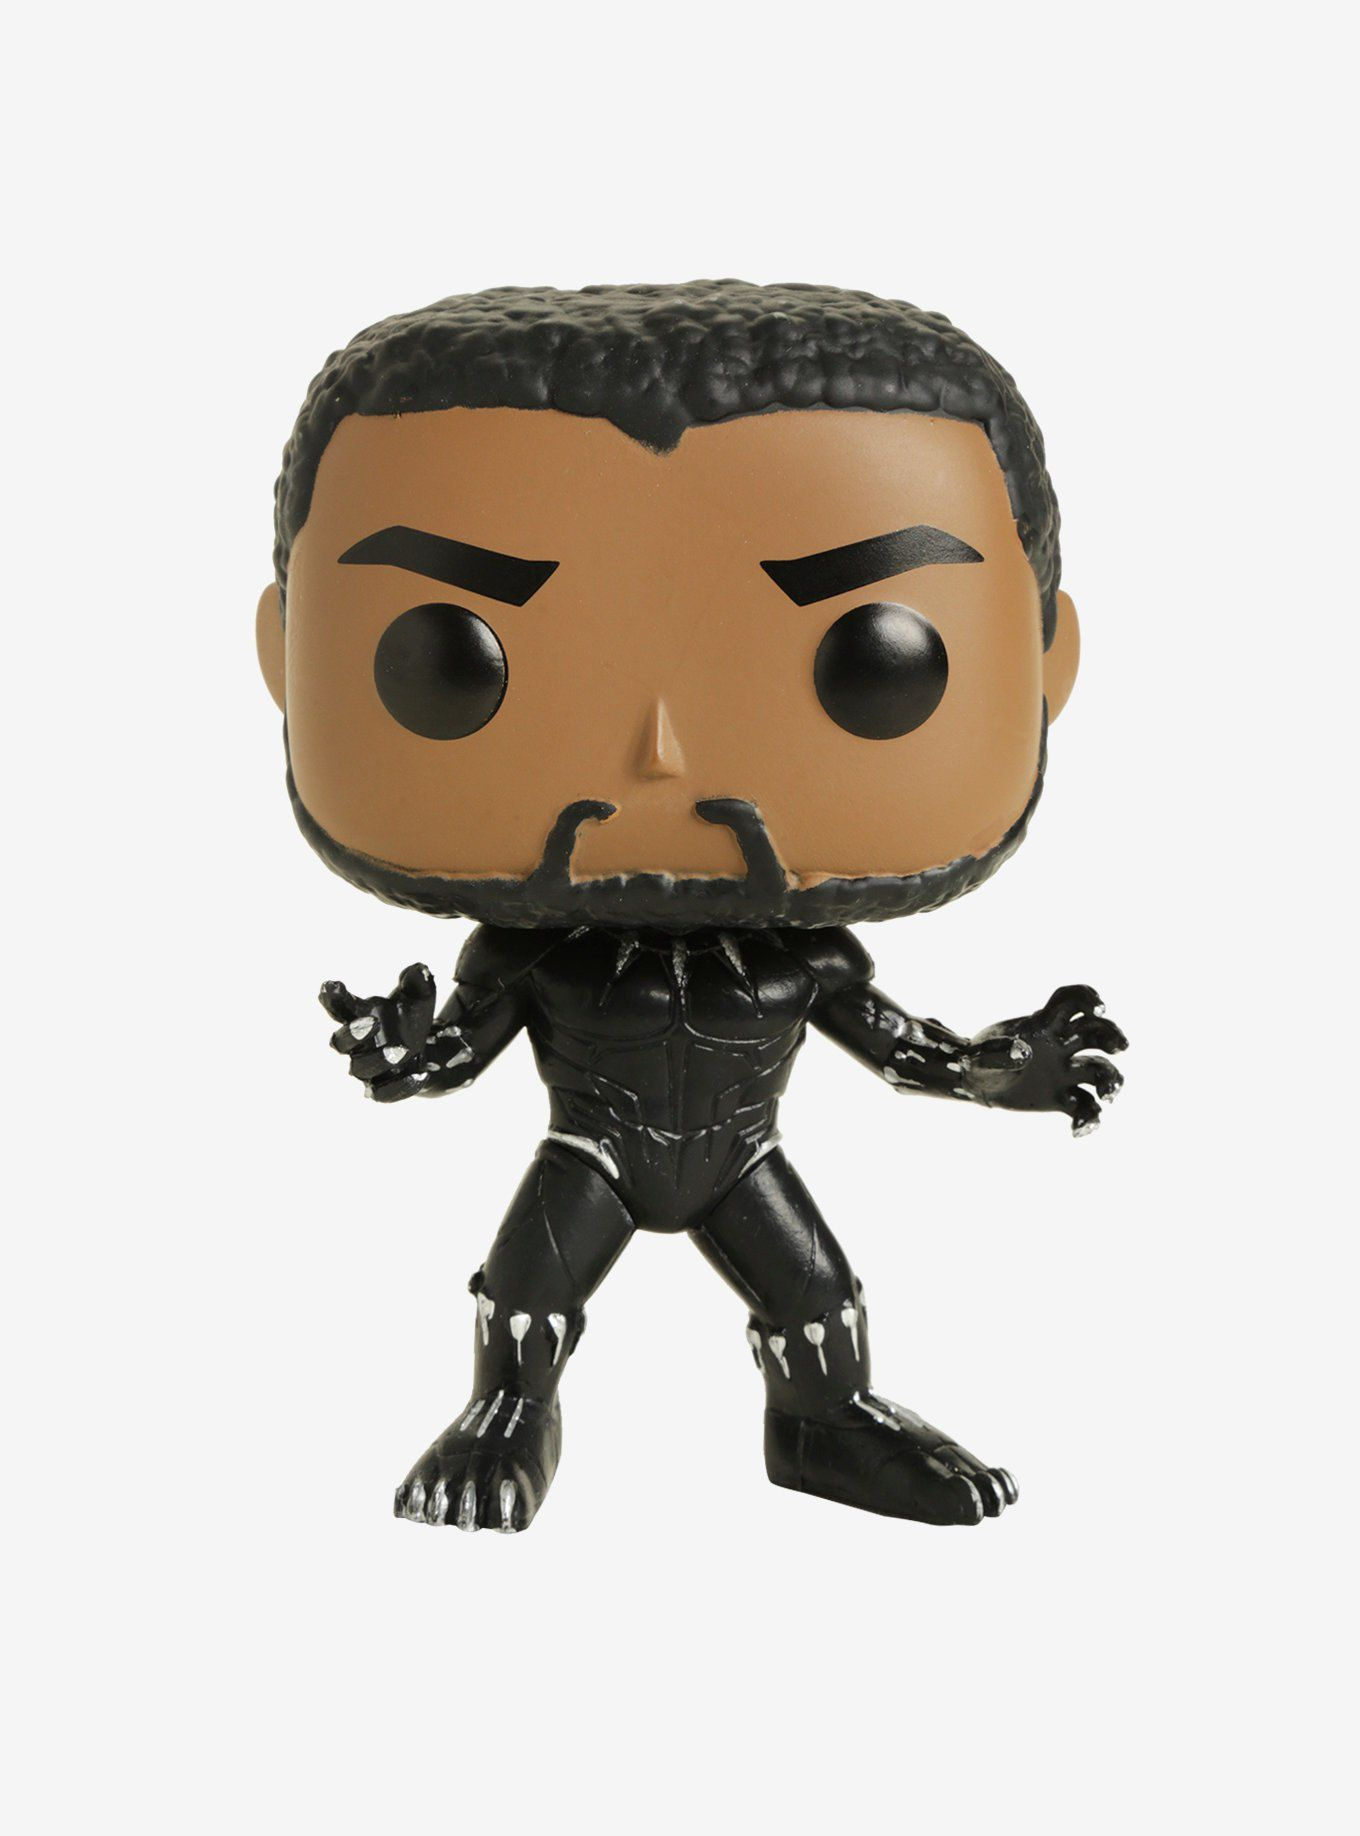 Black Panther #273 ( Pantera Negra ) - Funko Pop! Marvel